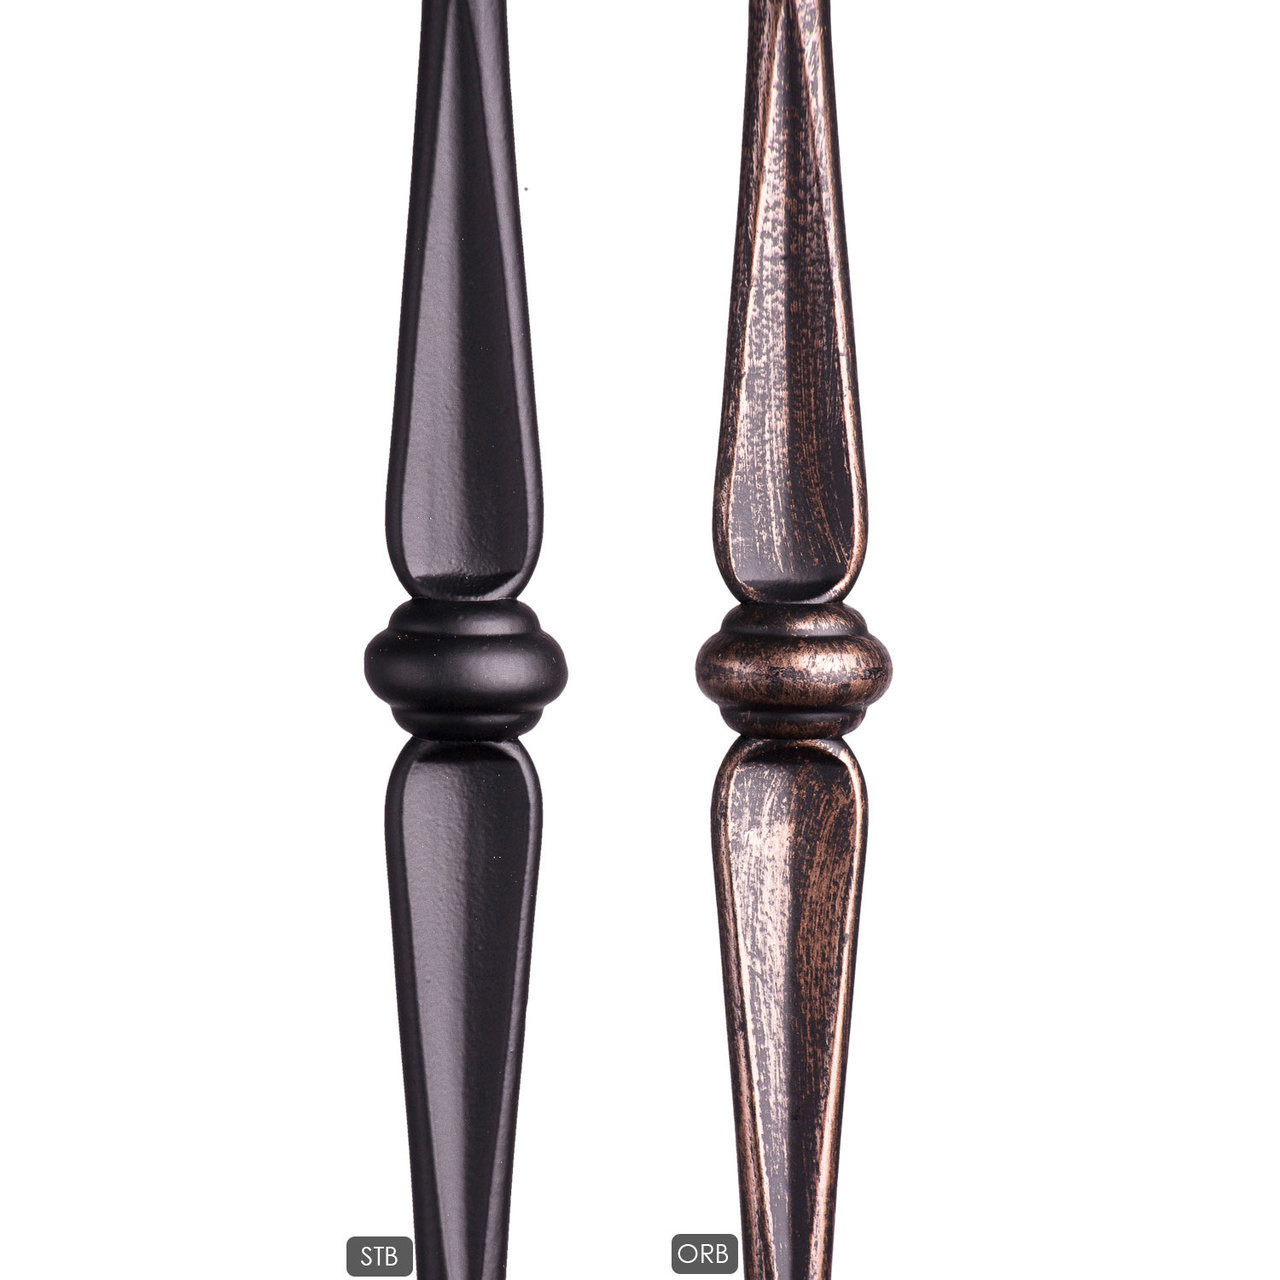 HF2.11.4 Tubular Round Double Knuckle available in satin black and oil rubbed bronze powder coatings.